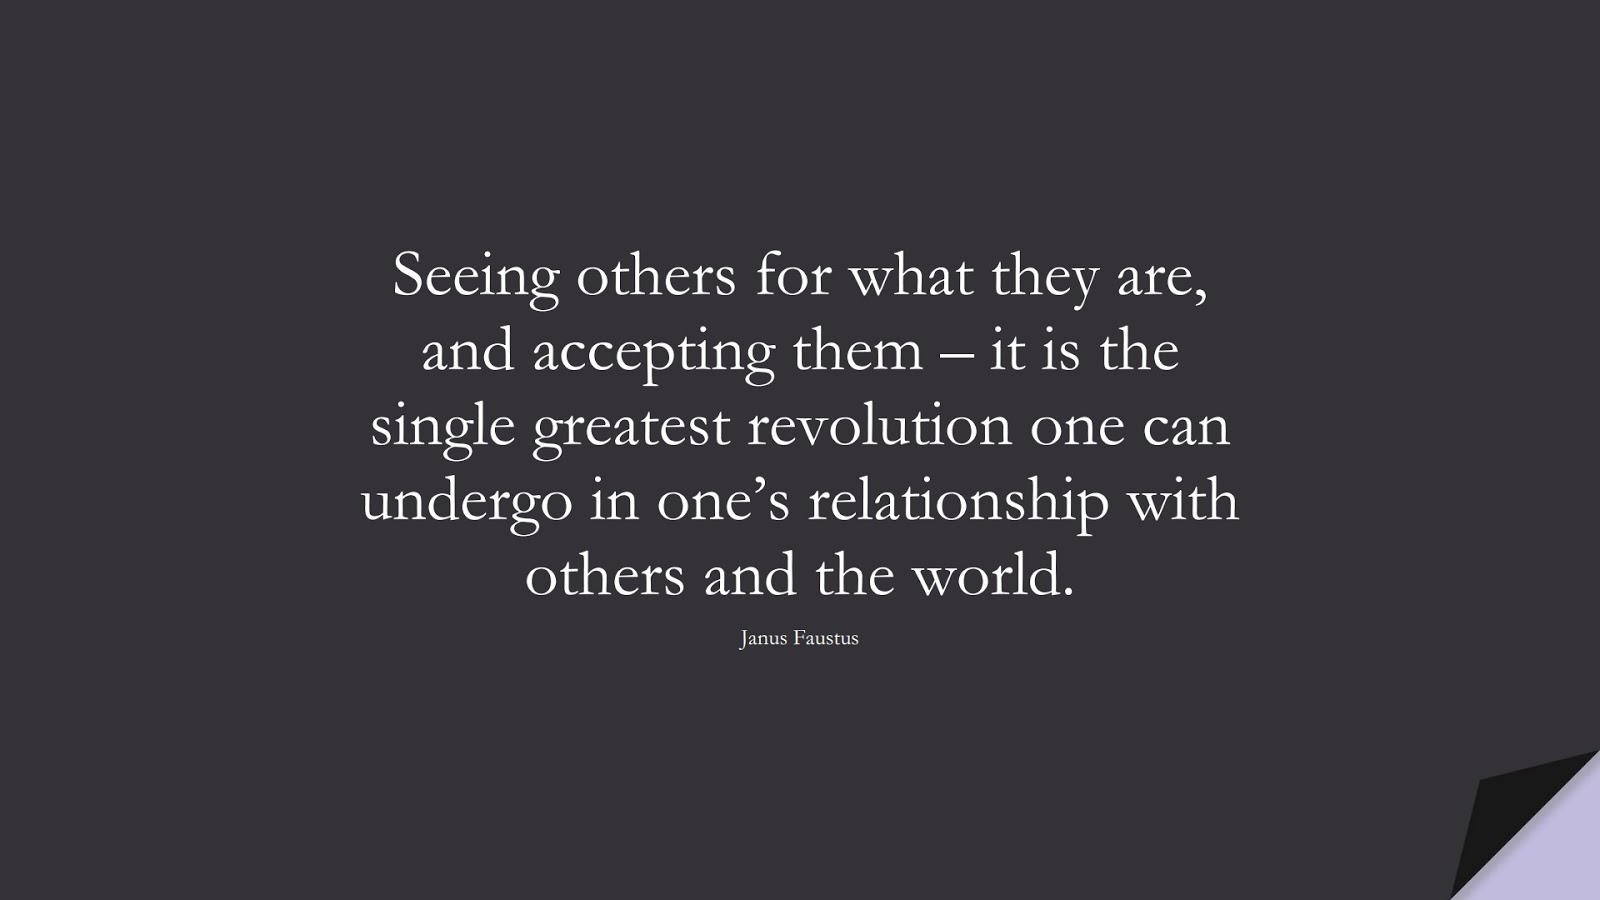 Seeing others for what they are, and accepting them – it is the single greatest revolution one can undergo in one's relationship with others and the world. (Janus Faustus);  #RelationshipQuotes